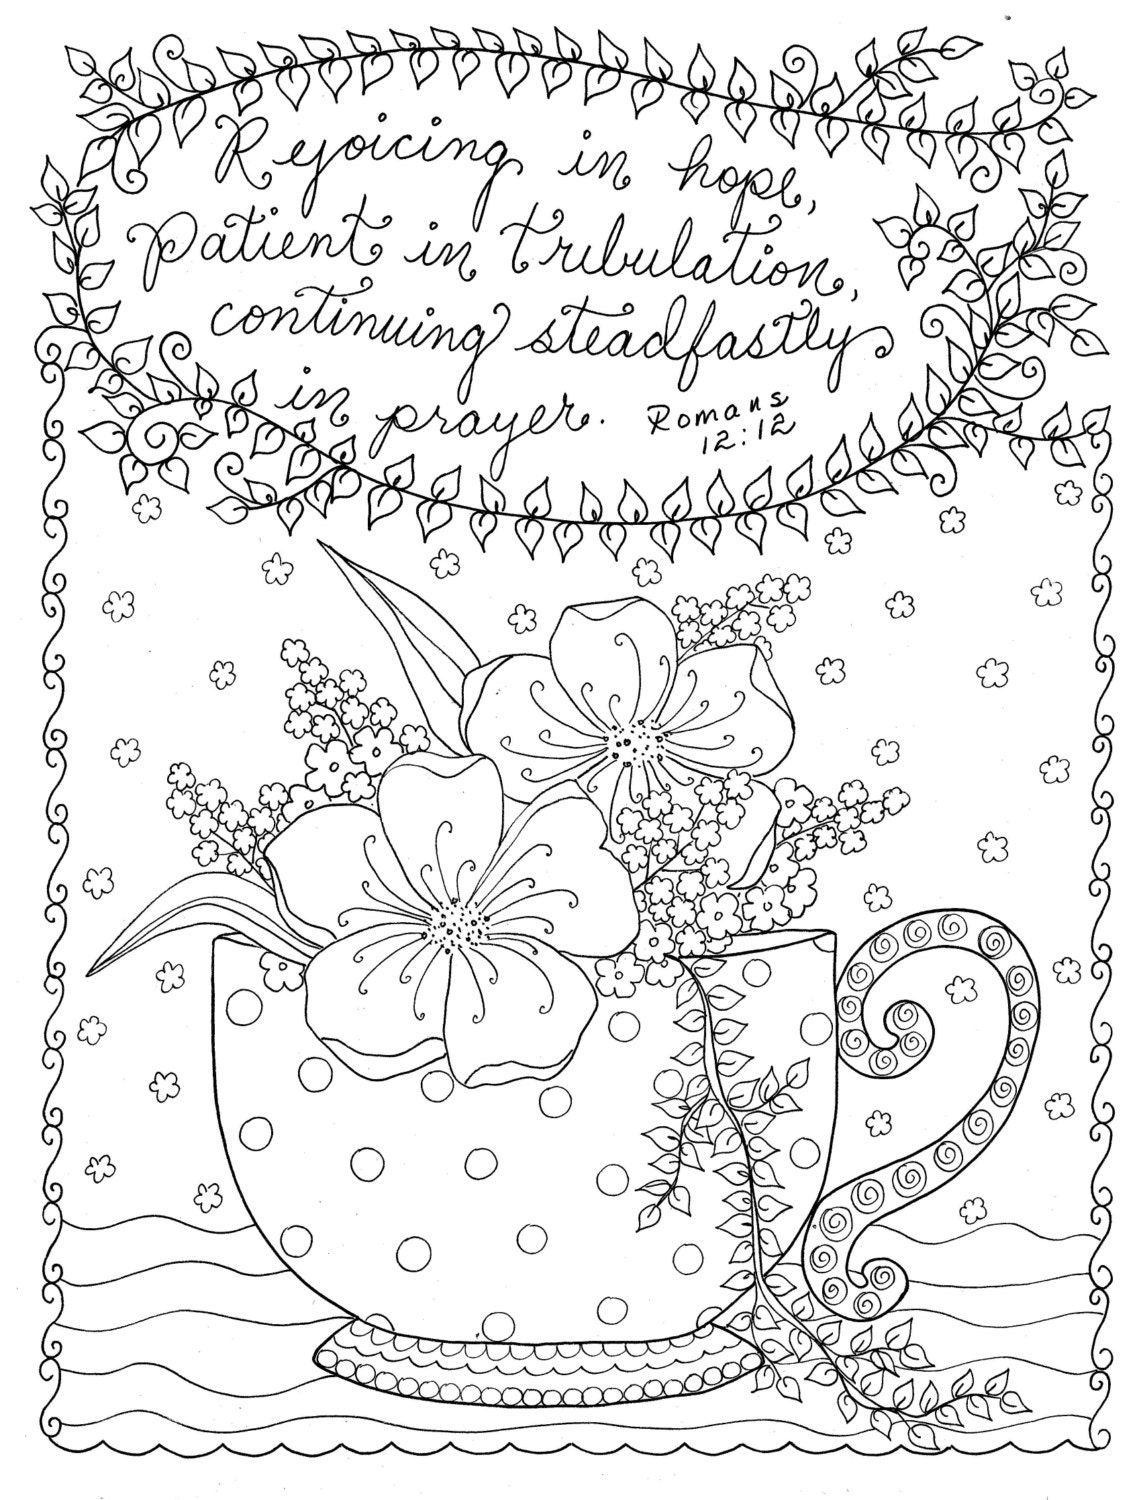 Coloring pages for religious ~ Digital Coloring page Christian Coloring Scripture Instant ...